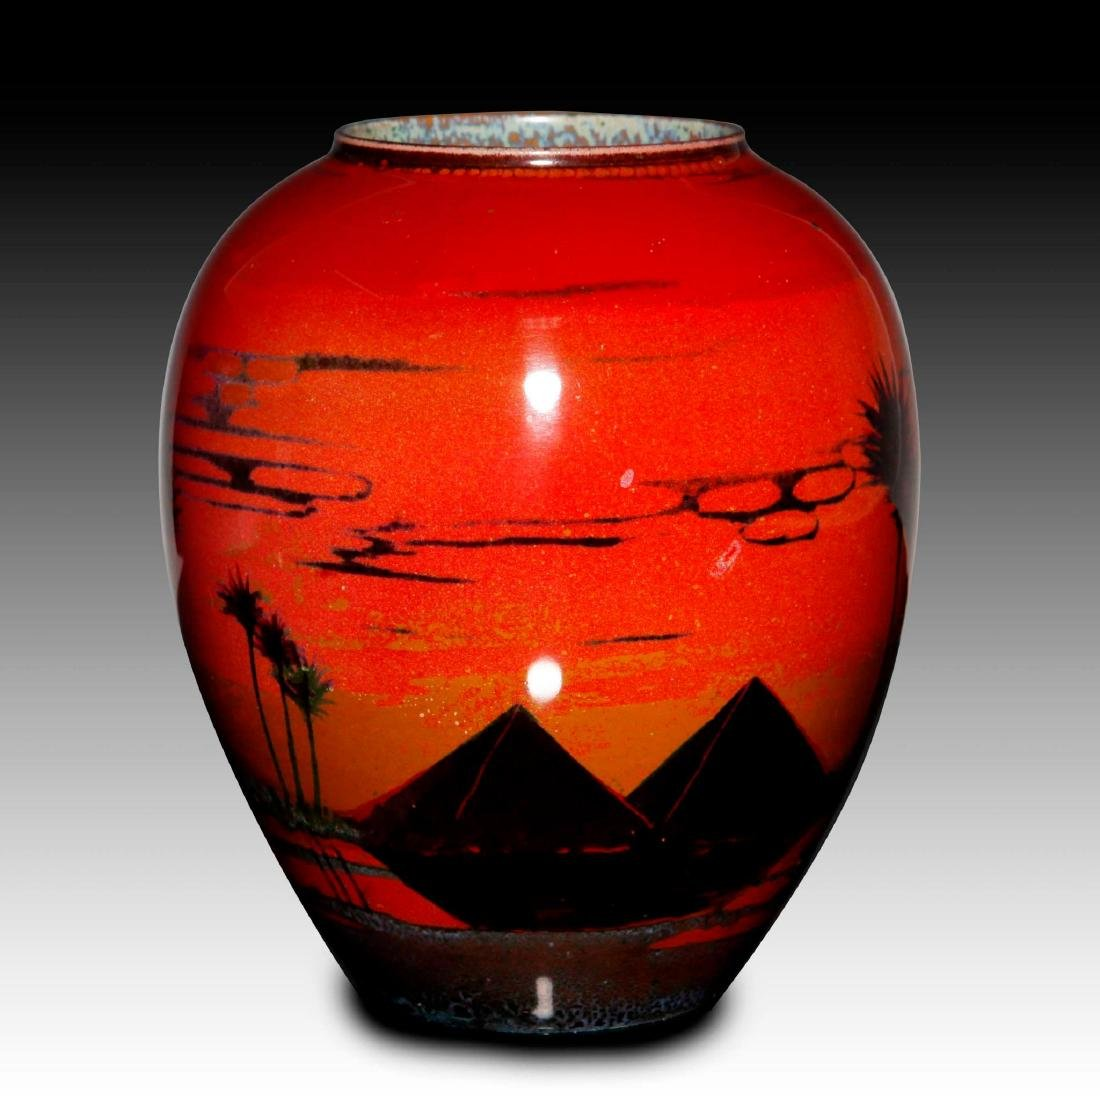 A ROYAL DOULTON SUNG FLAMBE WARE VASE WITH PYRAMIDS